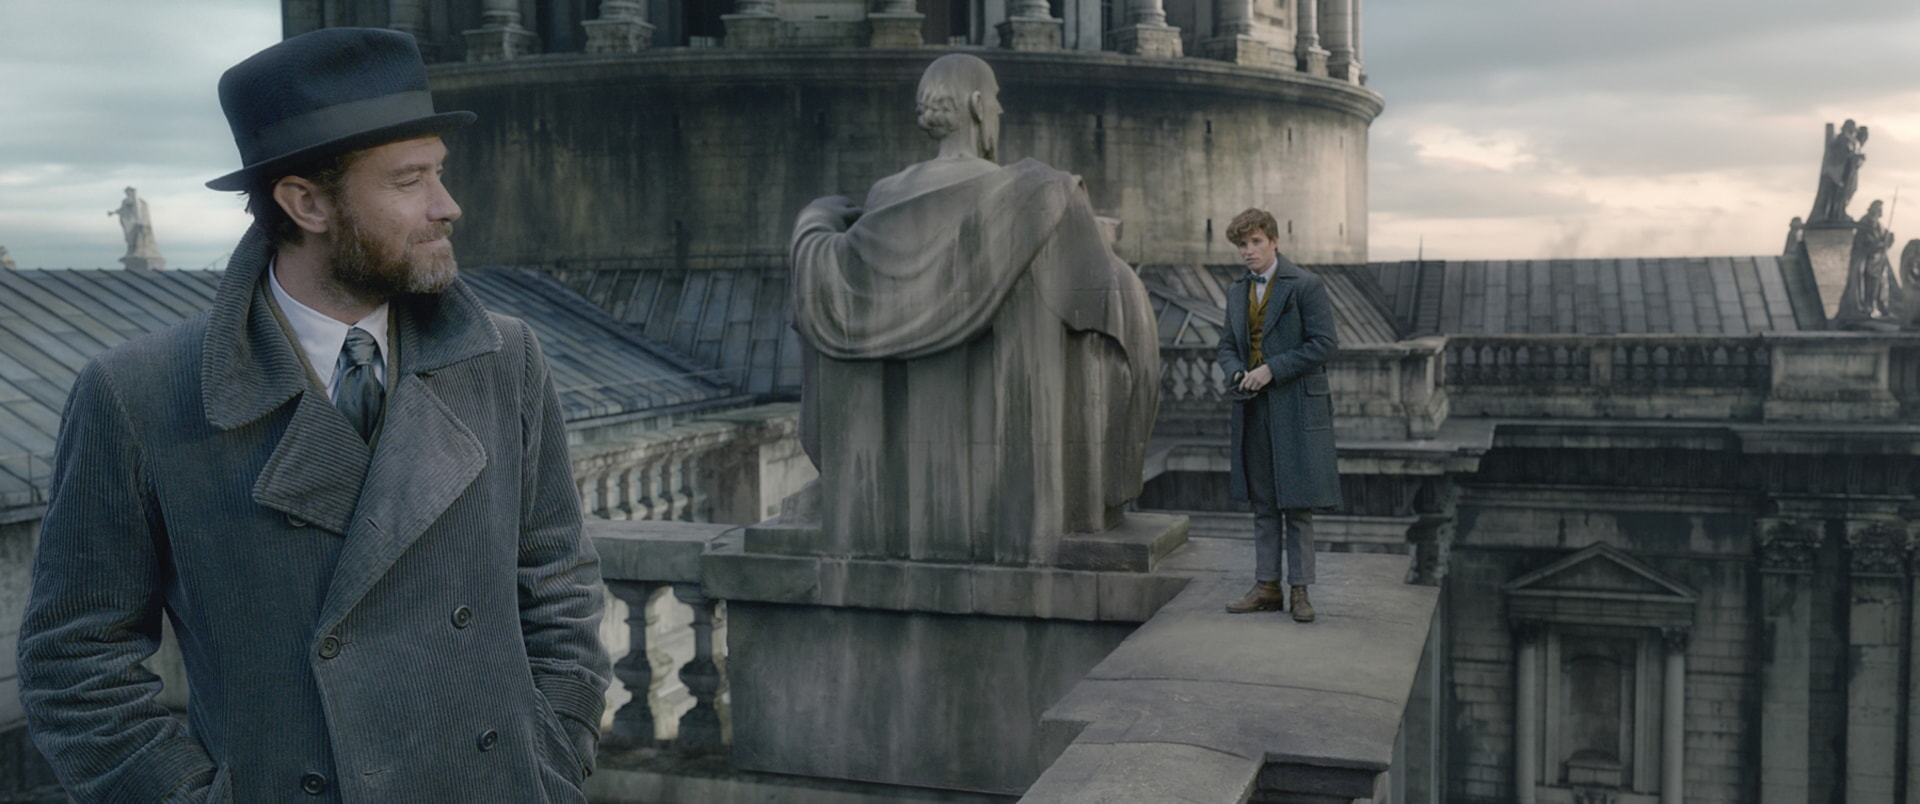 """(L-R) JUDE LAW as young ALBUS DUMBLEDORE and EDDIE REDMAYNE as Newt Scamander in Warner Bros. Pictures' fantasy adventure """"FANTASTIC BEASTS: THE CRIMES OF GRINDELWALD,"""" a Warner Bros. Pictures release."""